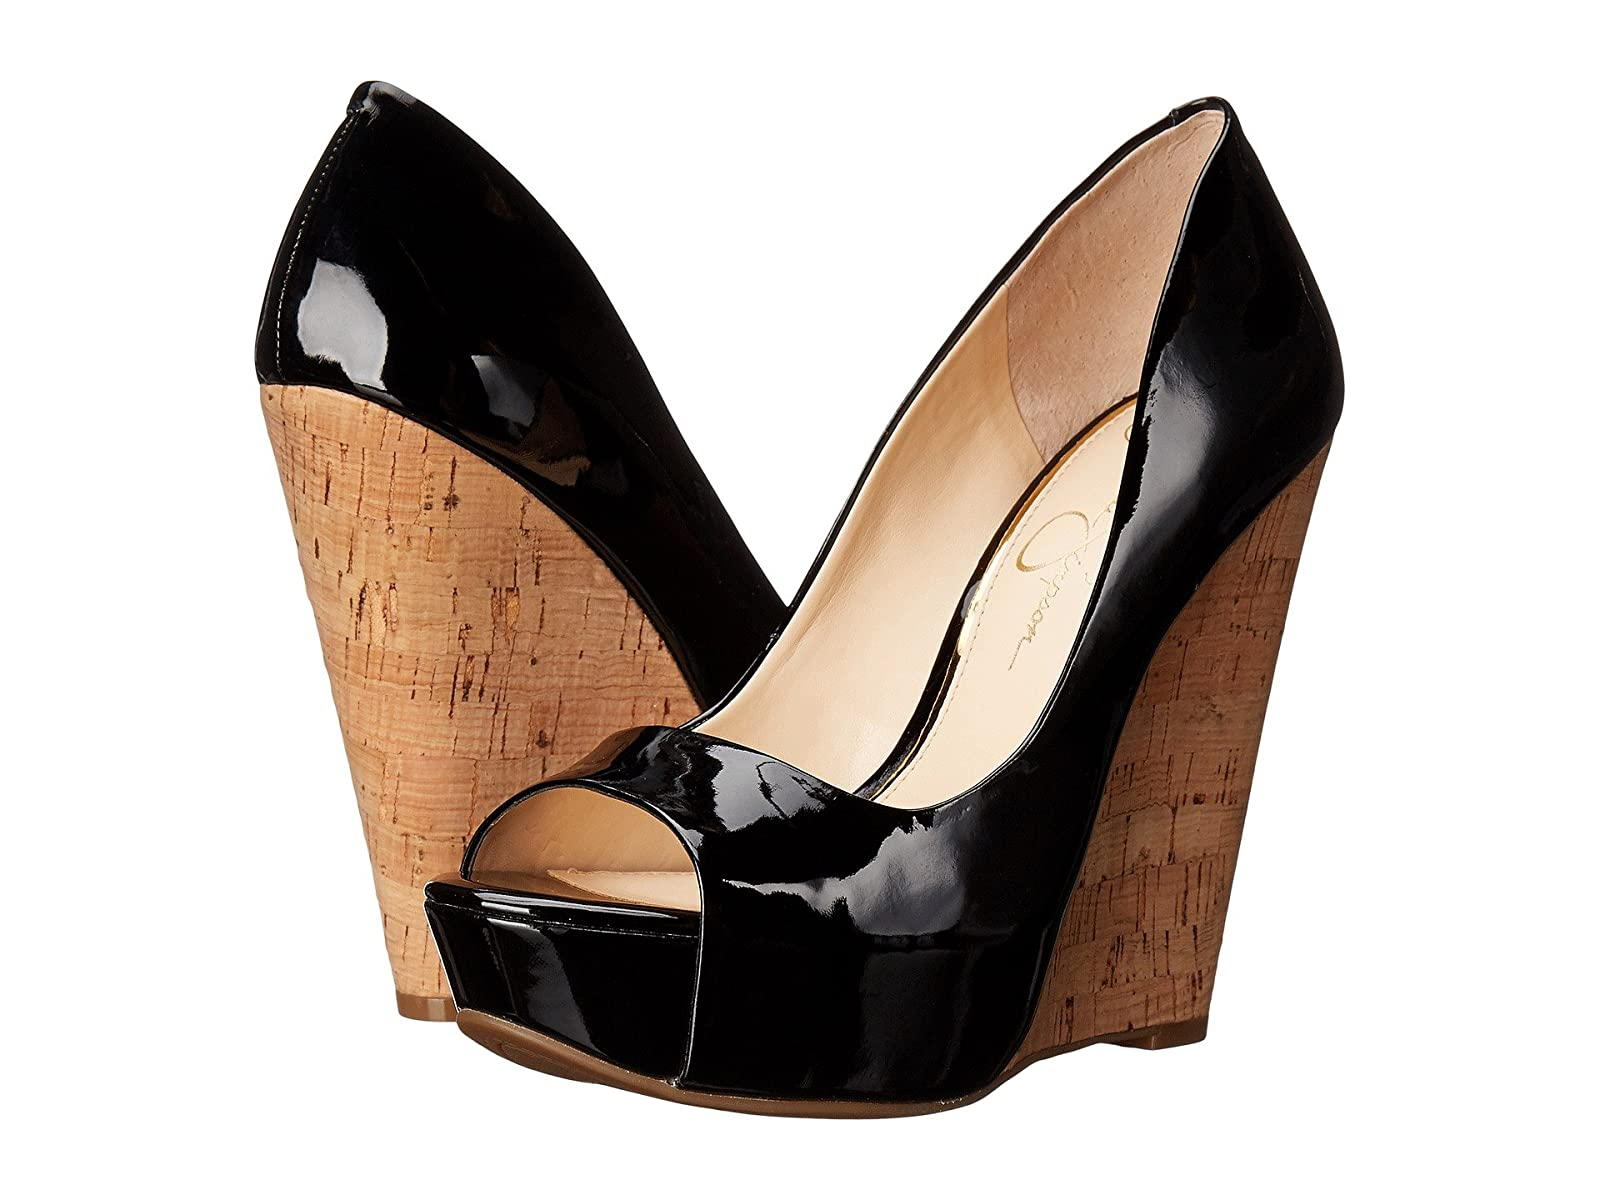 Jessica Simpson BethaniCheap and distinctive eye-catching shoes